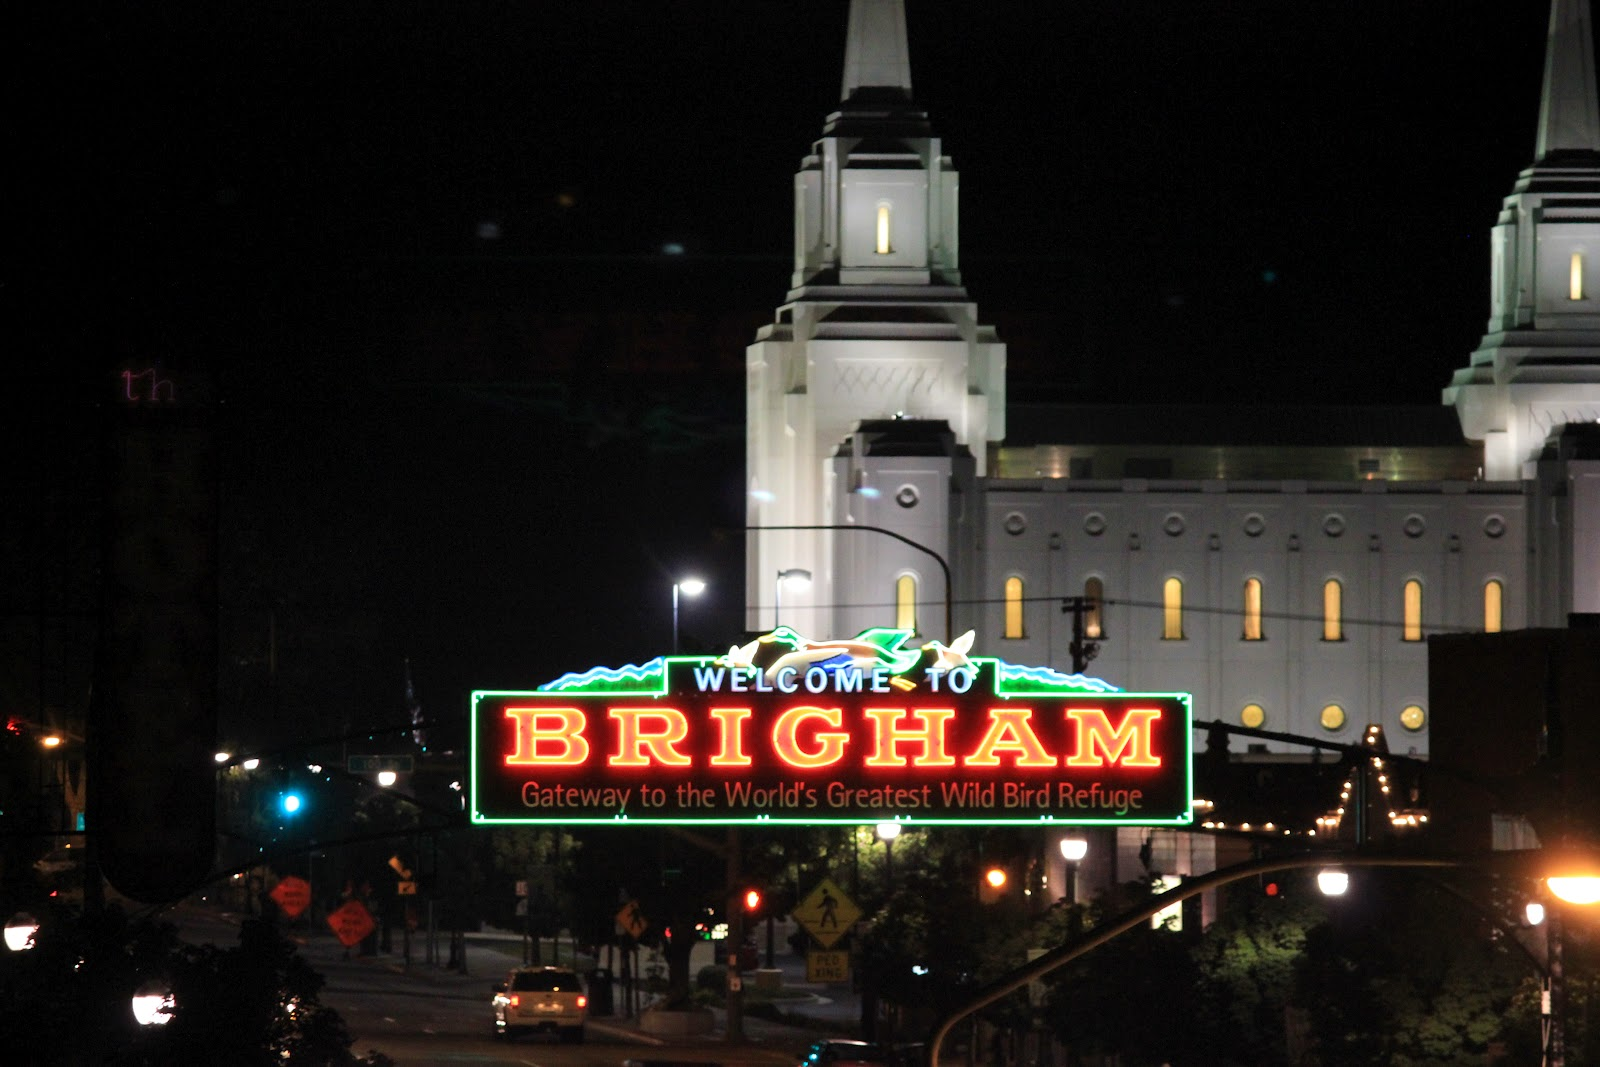 brigham city Find the best brigham city, ut churches on superpages we have multiple consumer reviews, photos and opening hours.